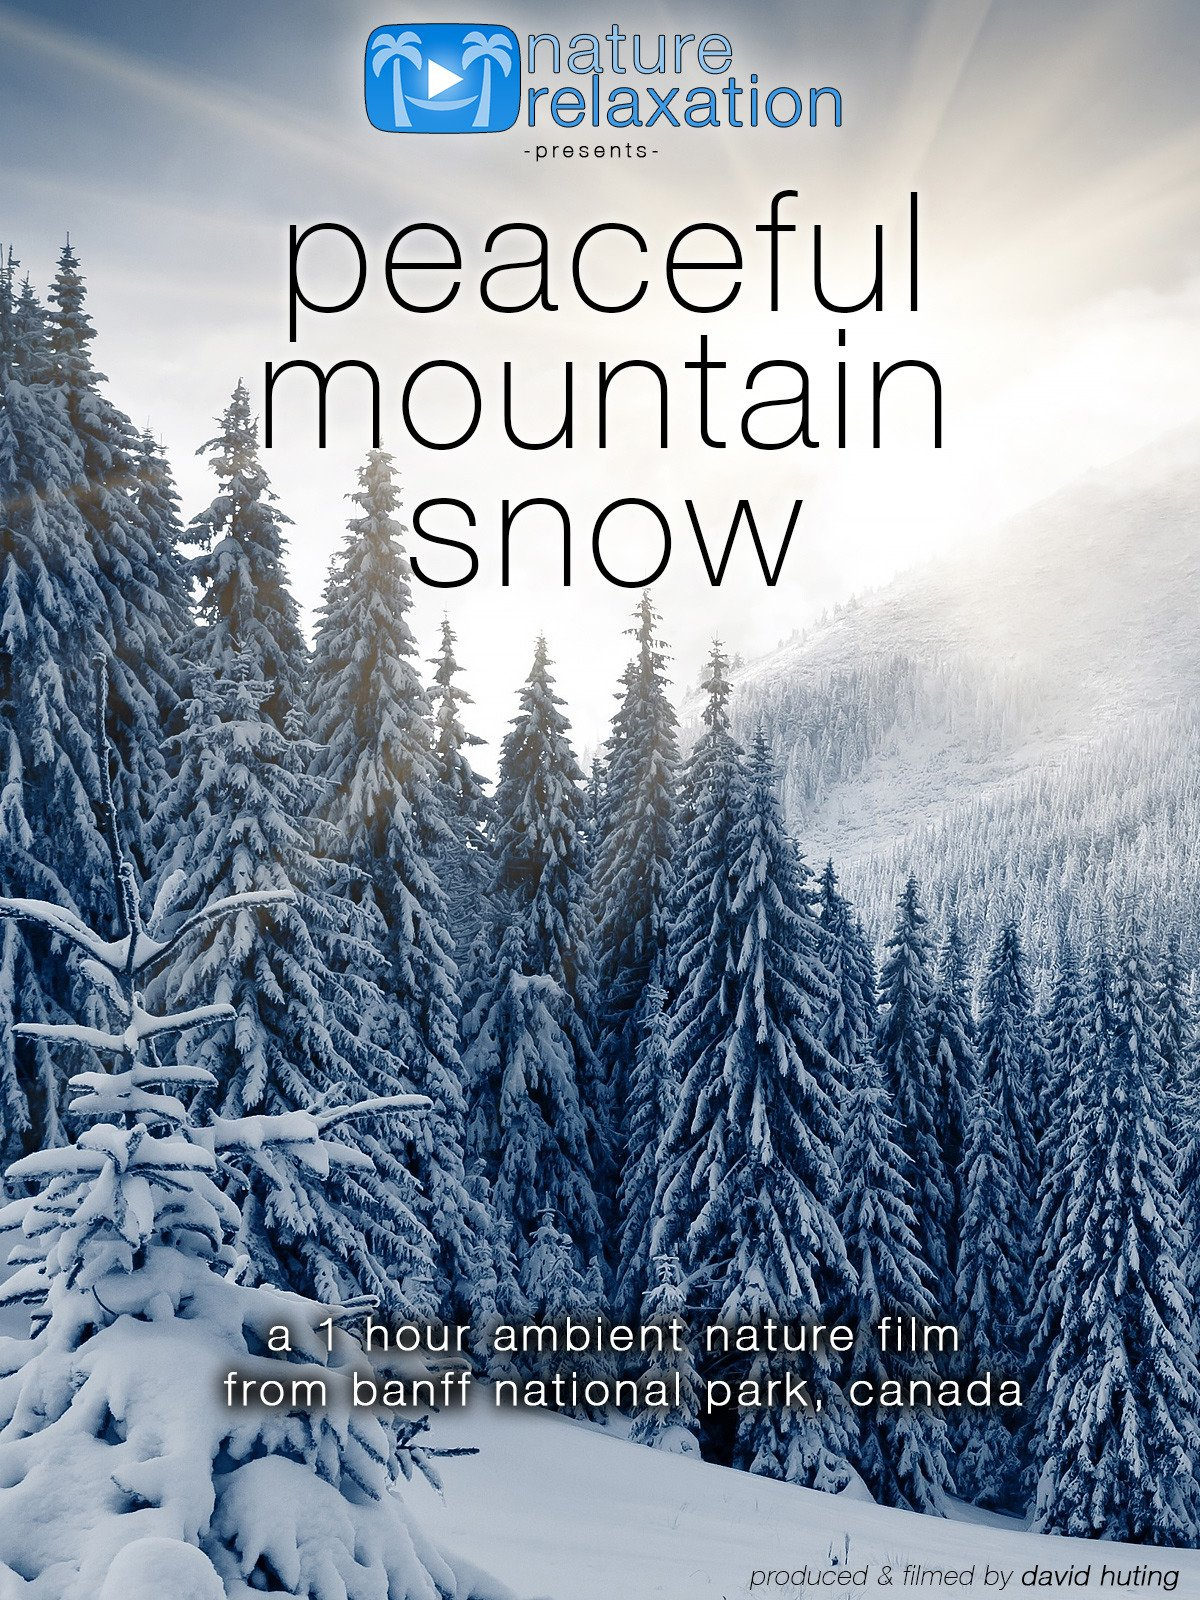 Peaceful Mountain Snow by Nature Relaxation 1 Hour Ambient Film from Banff National Park, Canada